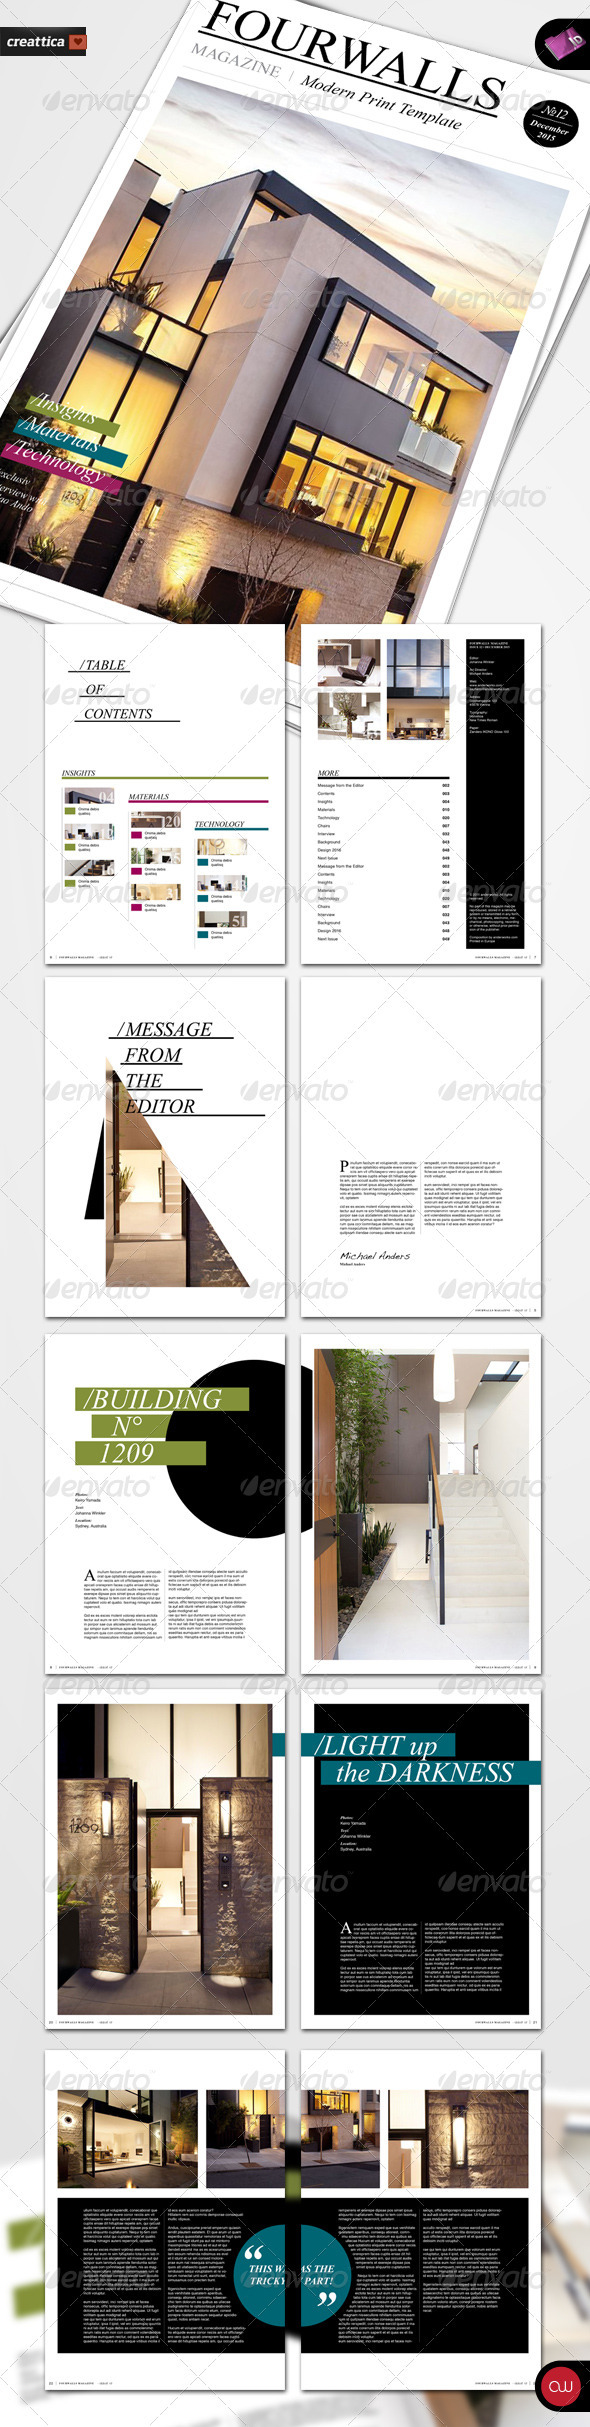 GraphicRiver Fourwalls Modern Print Template A4 1221178